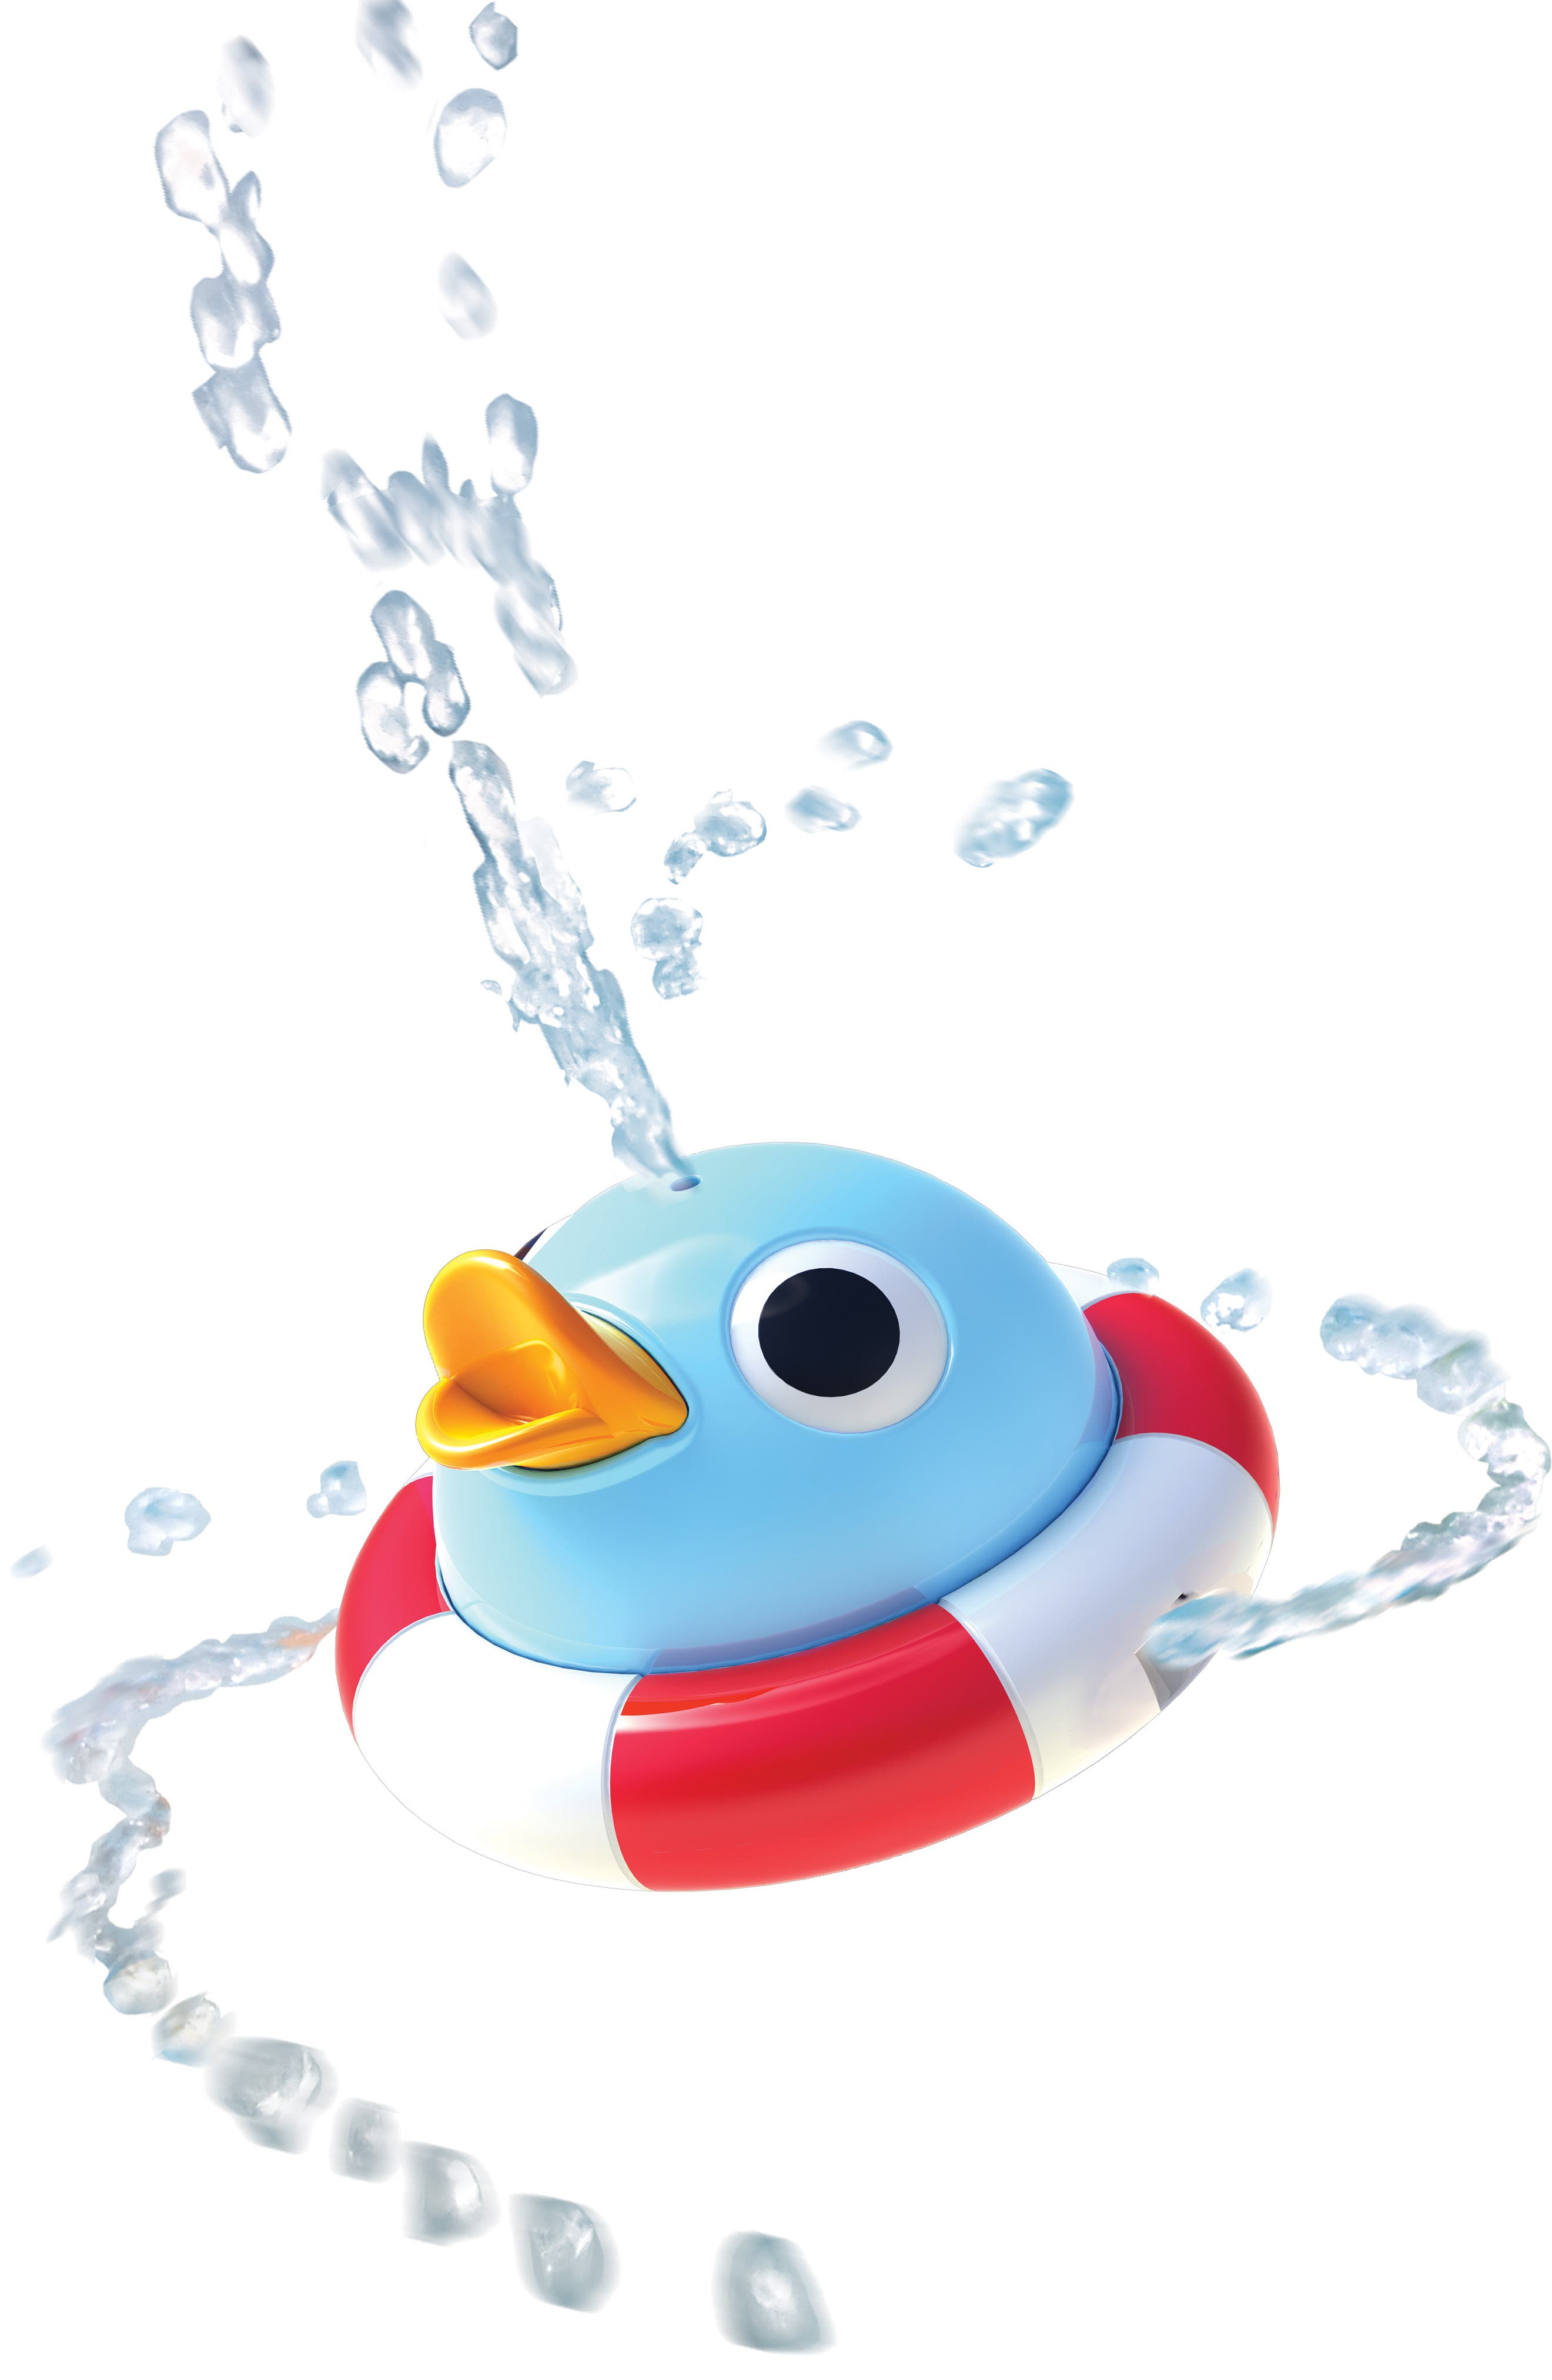 Musical Duck Race Bath Toy,                             Alternate thumbnail 13, color,                             RED